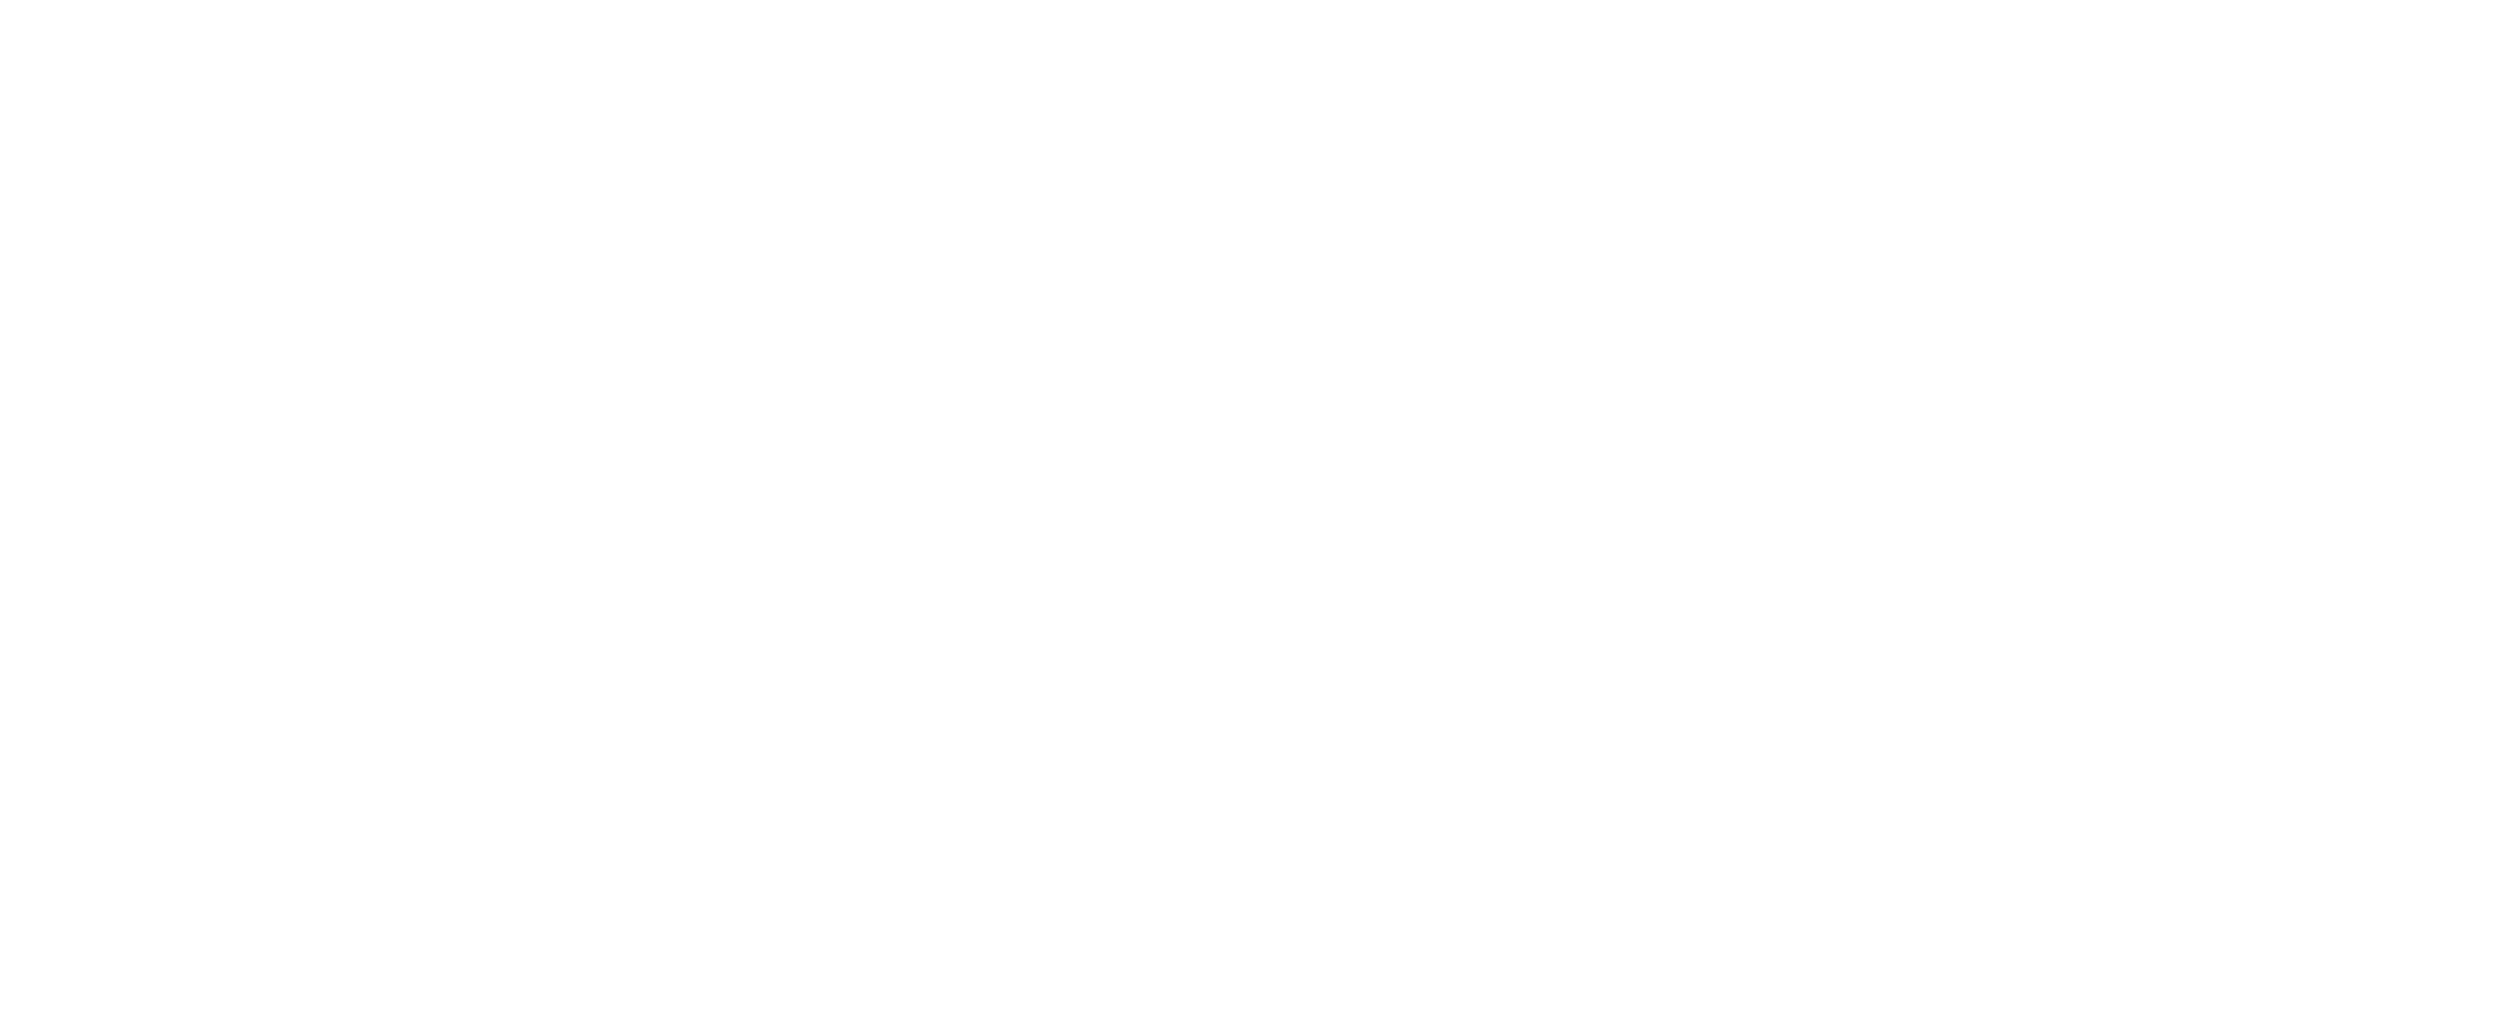 Team Locals Media - Tonic Music Media Partner